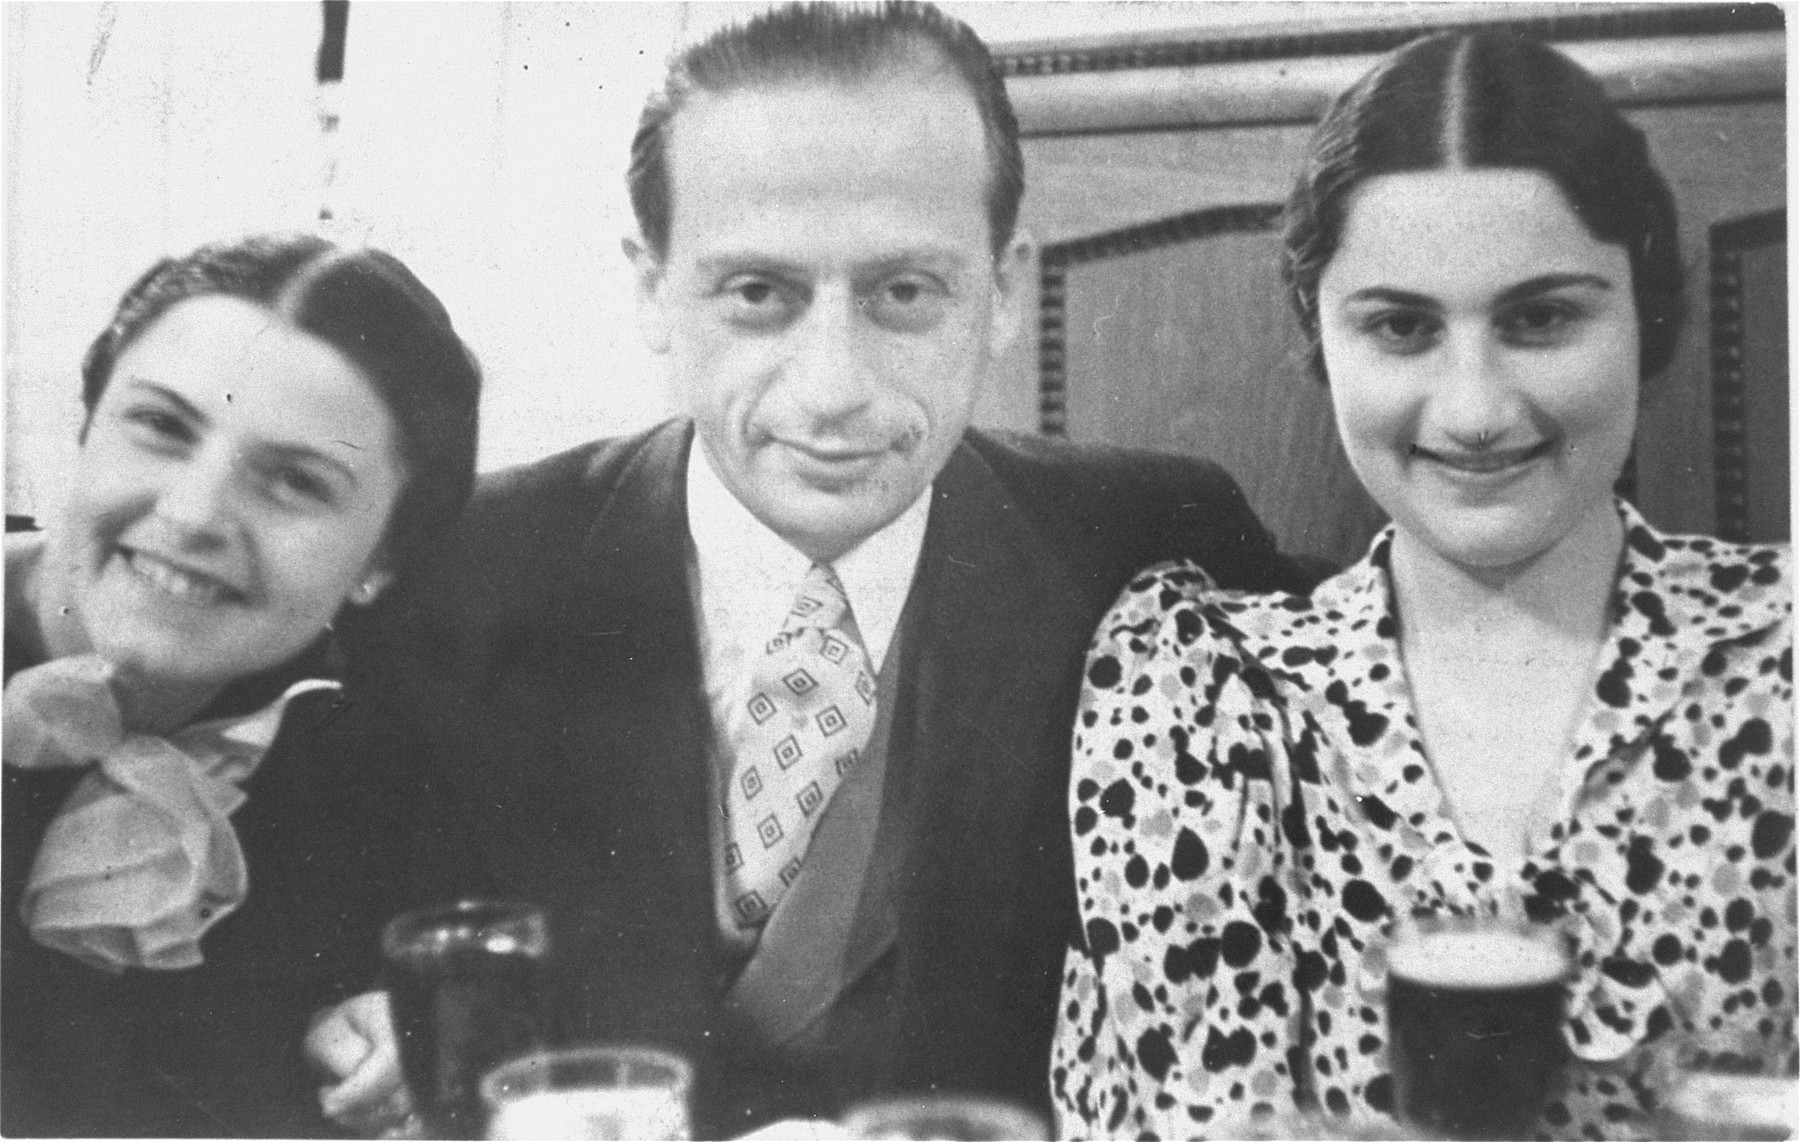 Portrait of three Hungarian Jews at a restaurant in Szeged.  Pictured are Leo Liebmann with his two sisters-in-law, Szenka  Liebmann (left) and Mariska (right).